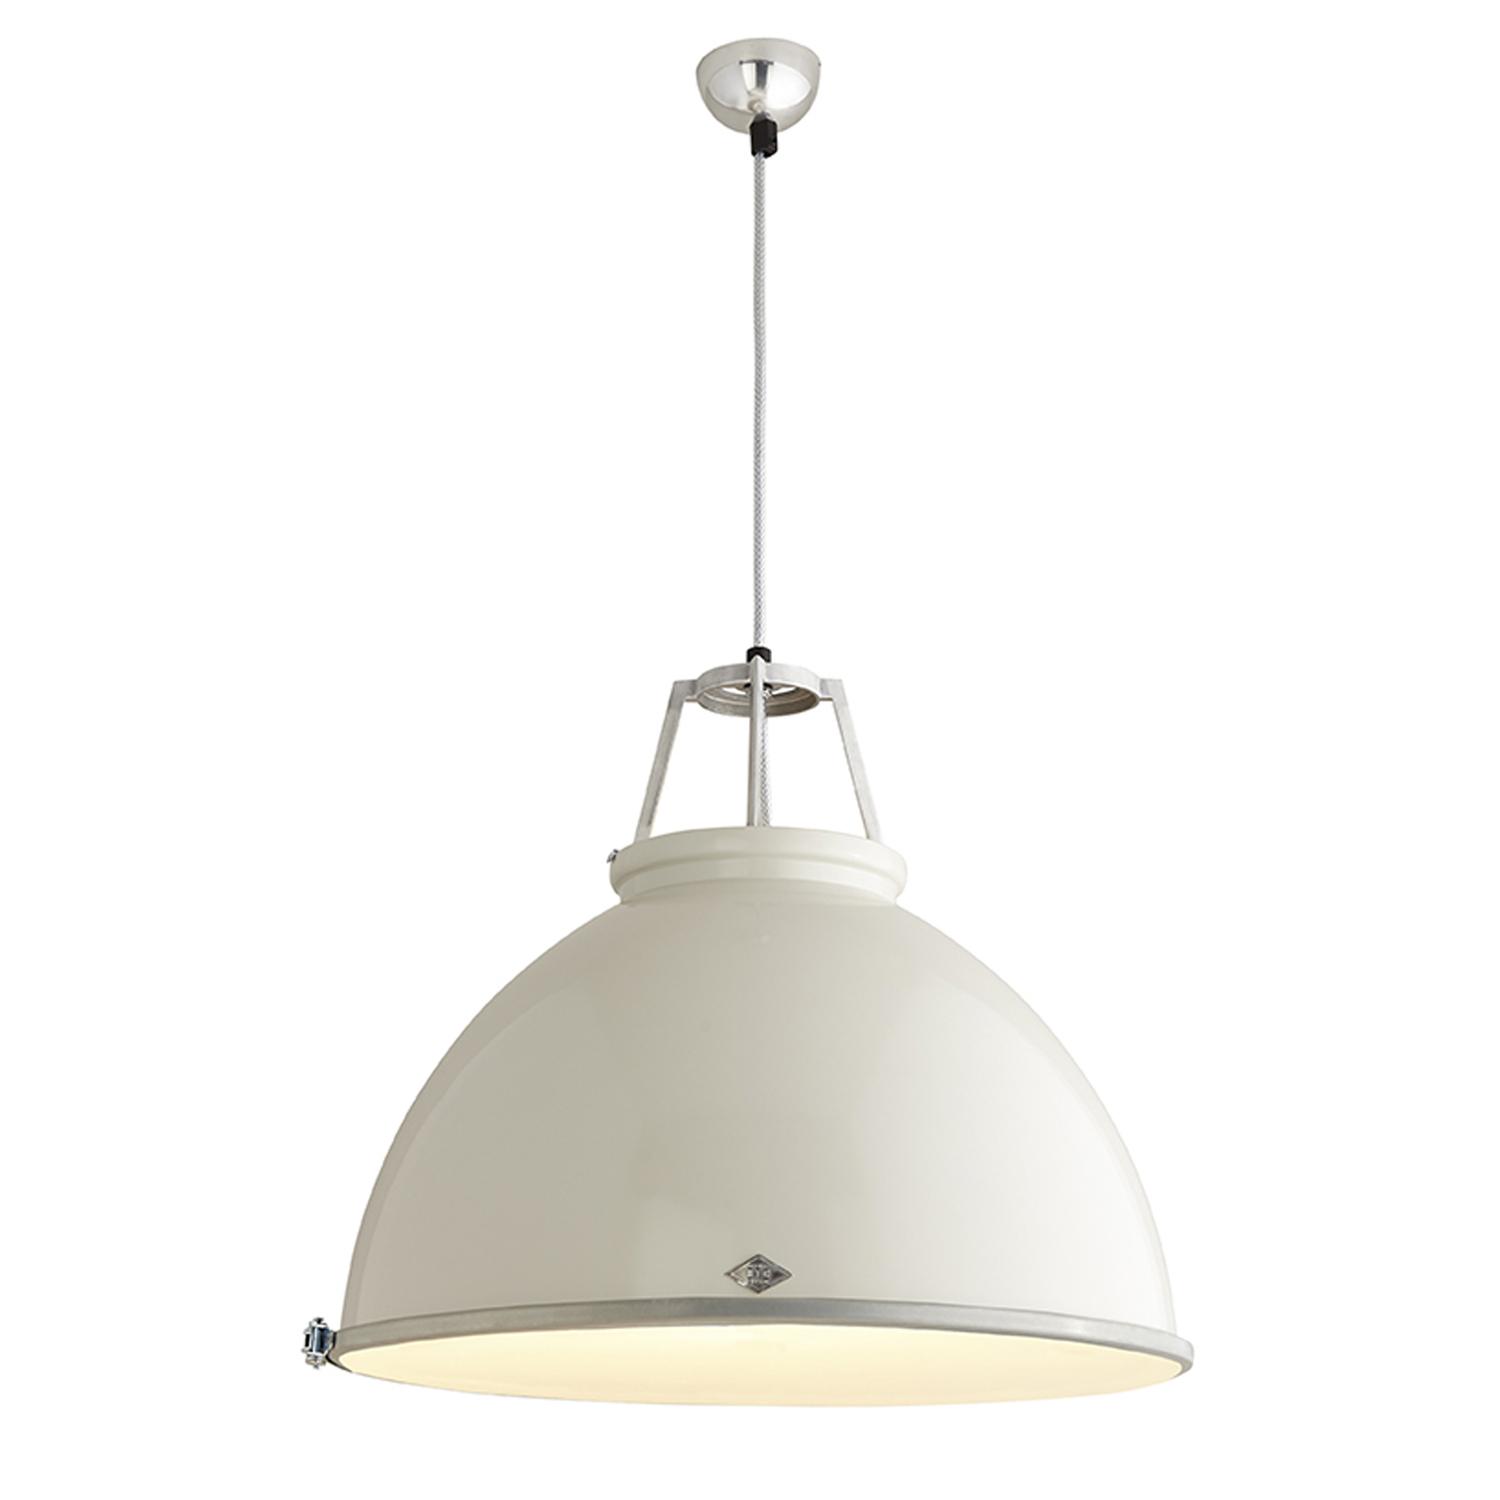 Titan Size 5 Pendant Light, Putty Grey with Etched Glass